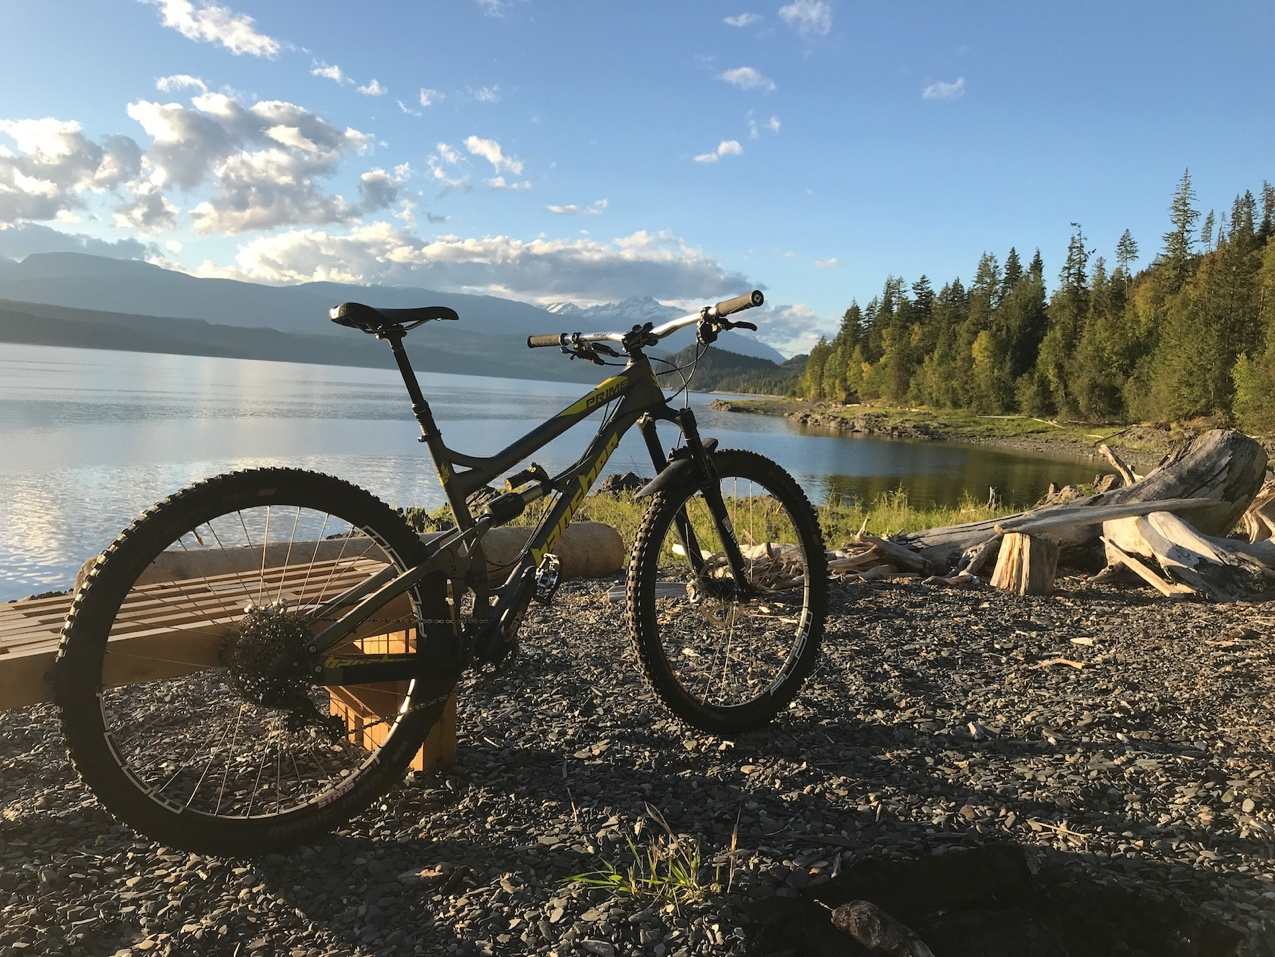 Beach at the end of Rhy's Peaces, mountain biking trail in Nakusp, BC